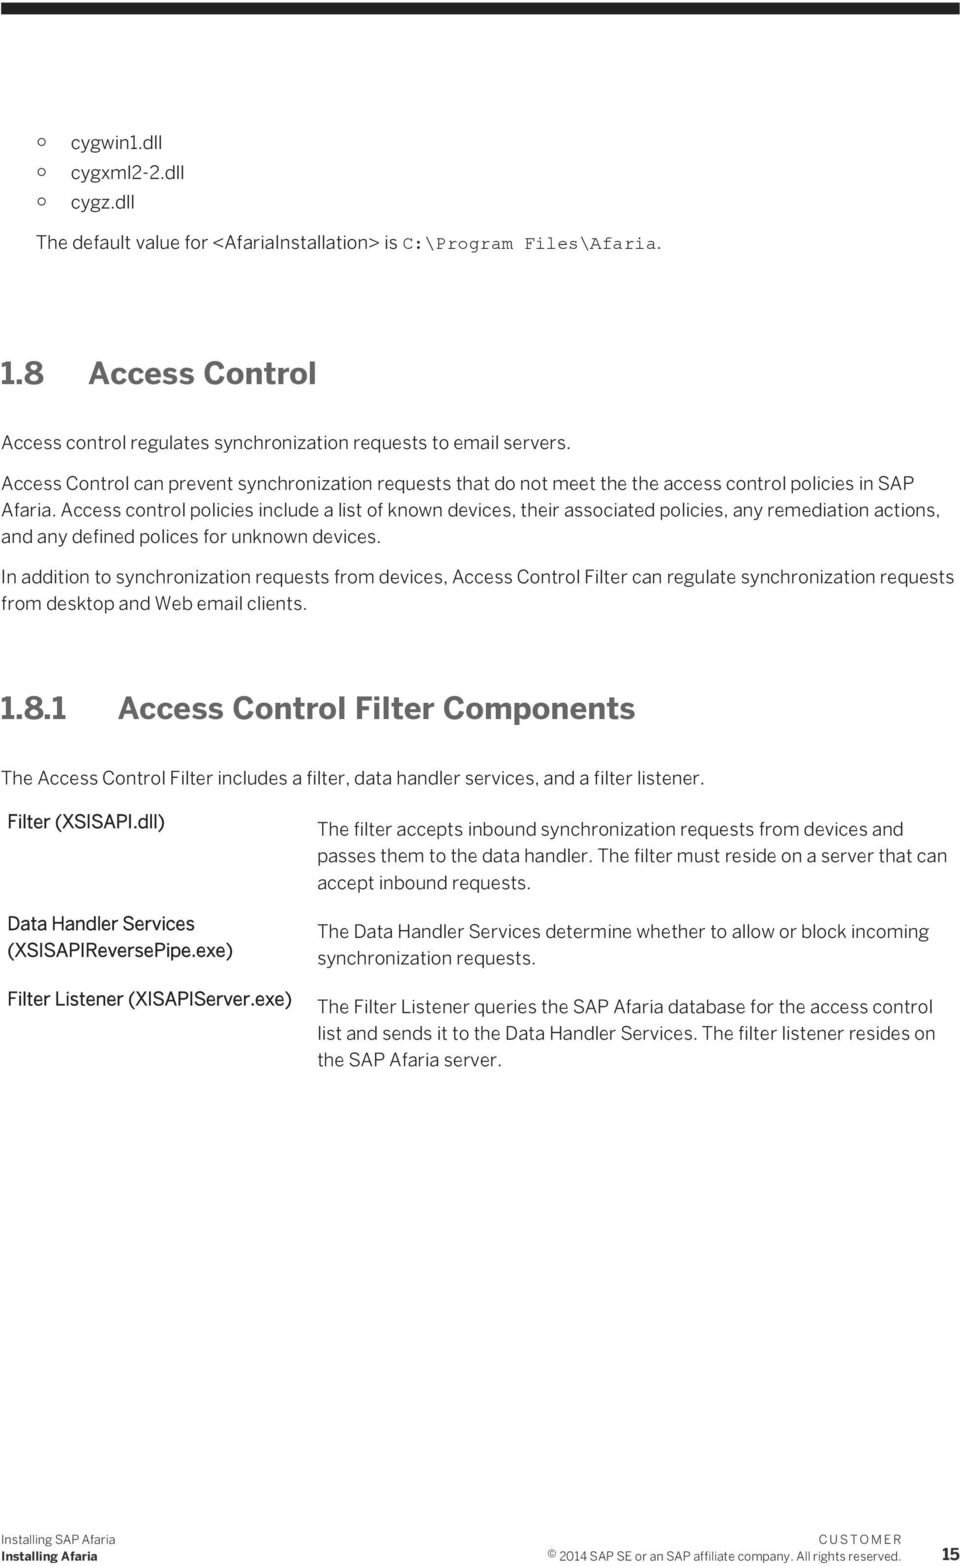 Access control policies include a list of known devices, their associated policies, any remediation actions, and any defined polices for unknown devices.